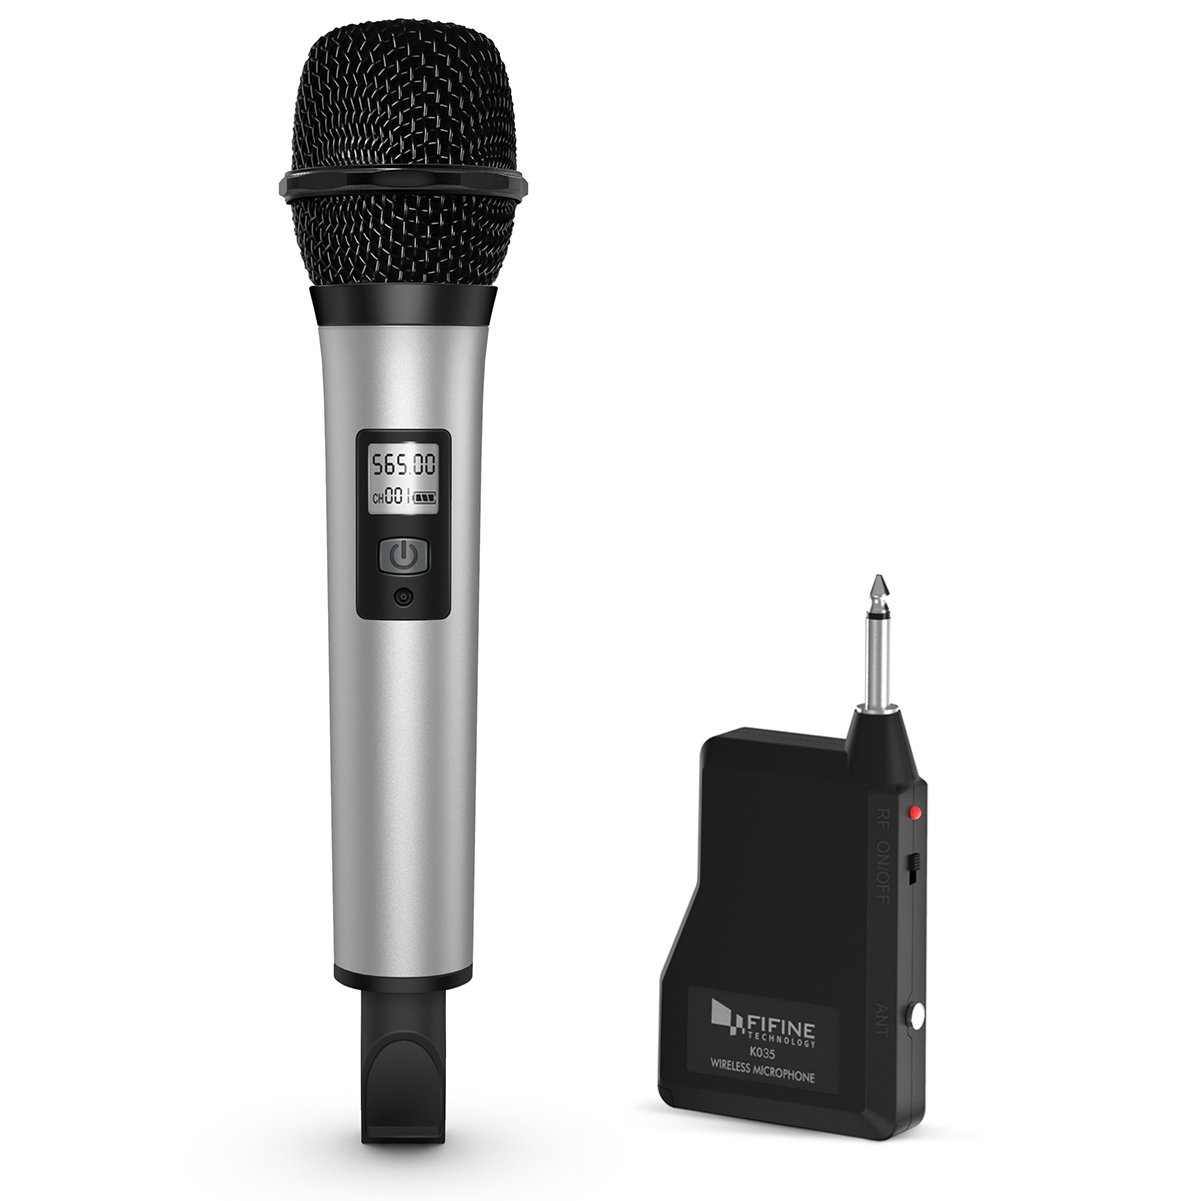 Fifine 20 Channel UHF Handheld Wireless Microphone For Church, Home Karaoke, Business Meetings. Easy To Set Up.(K035)